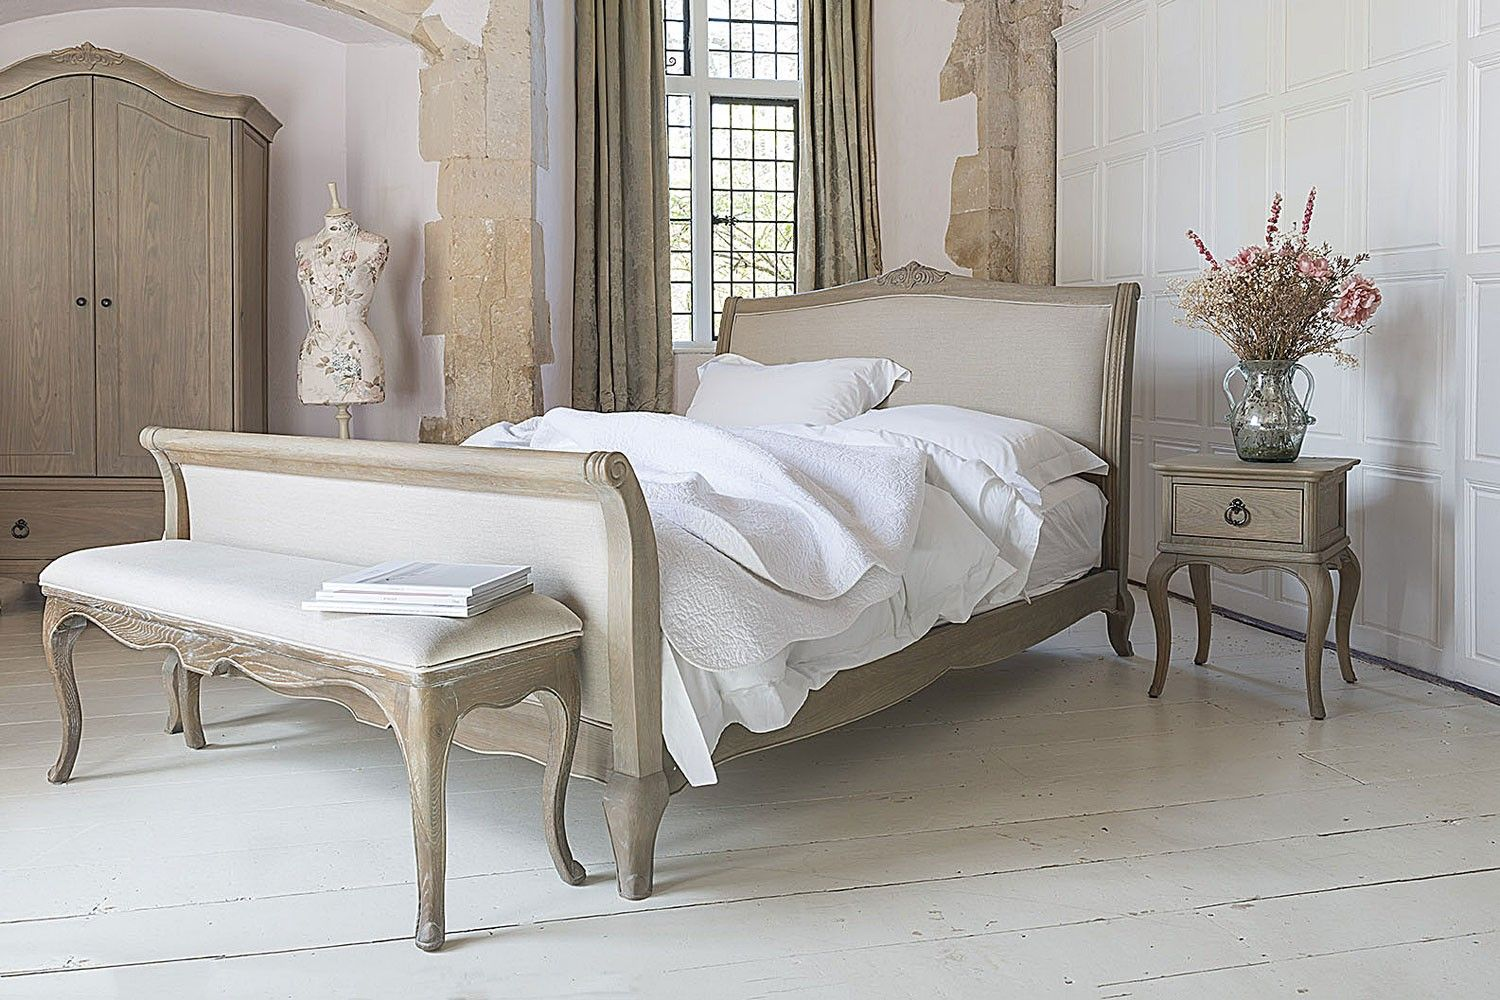 Camille French Style Upholstered Bed Crown French Furniture Bedroom Ideas Pinterest